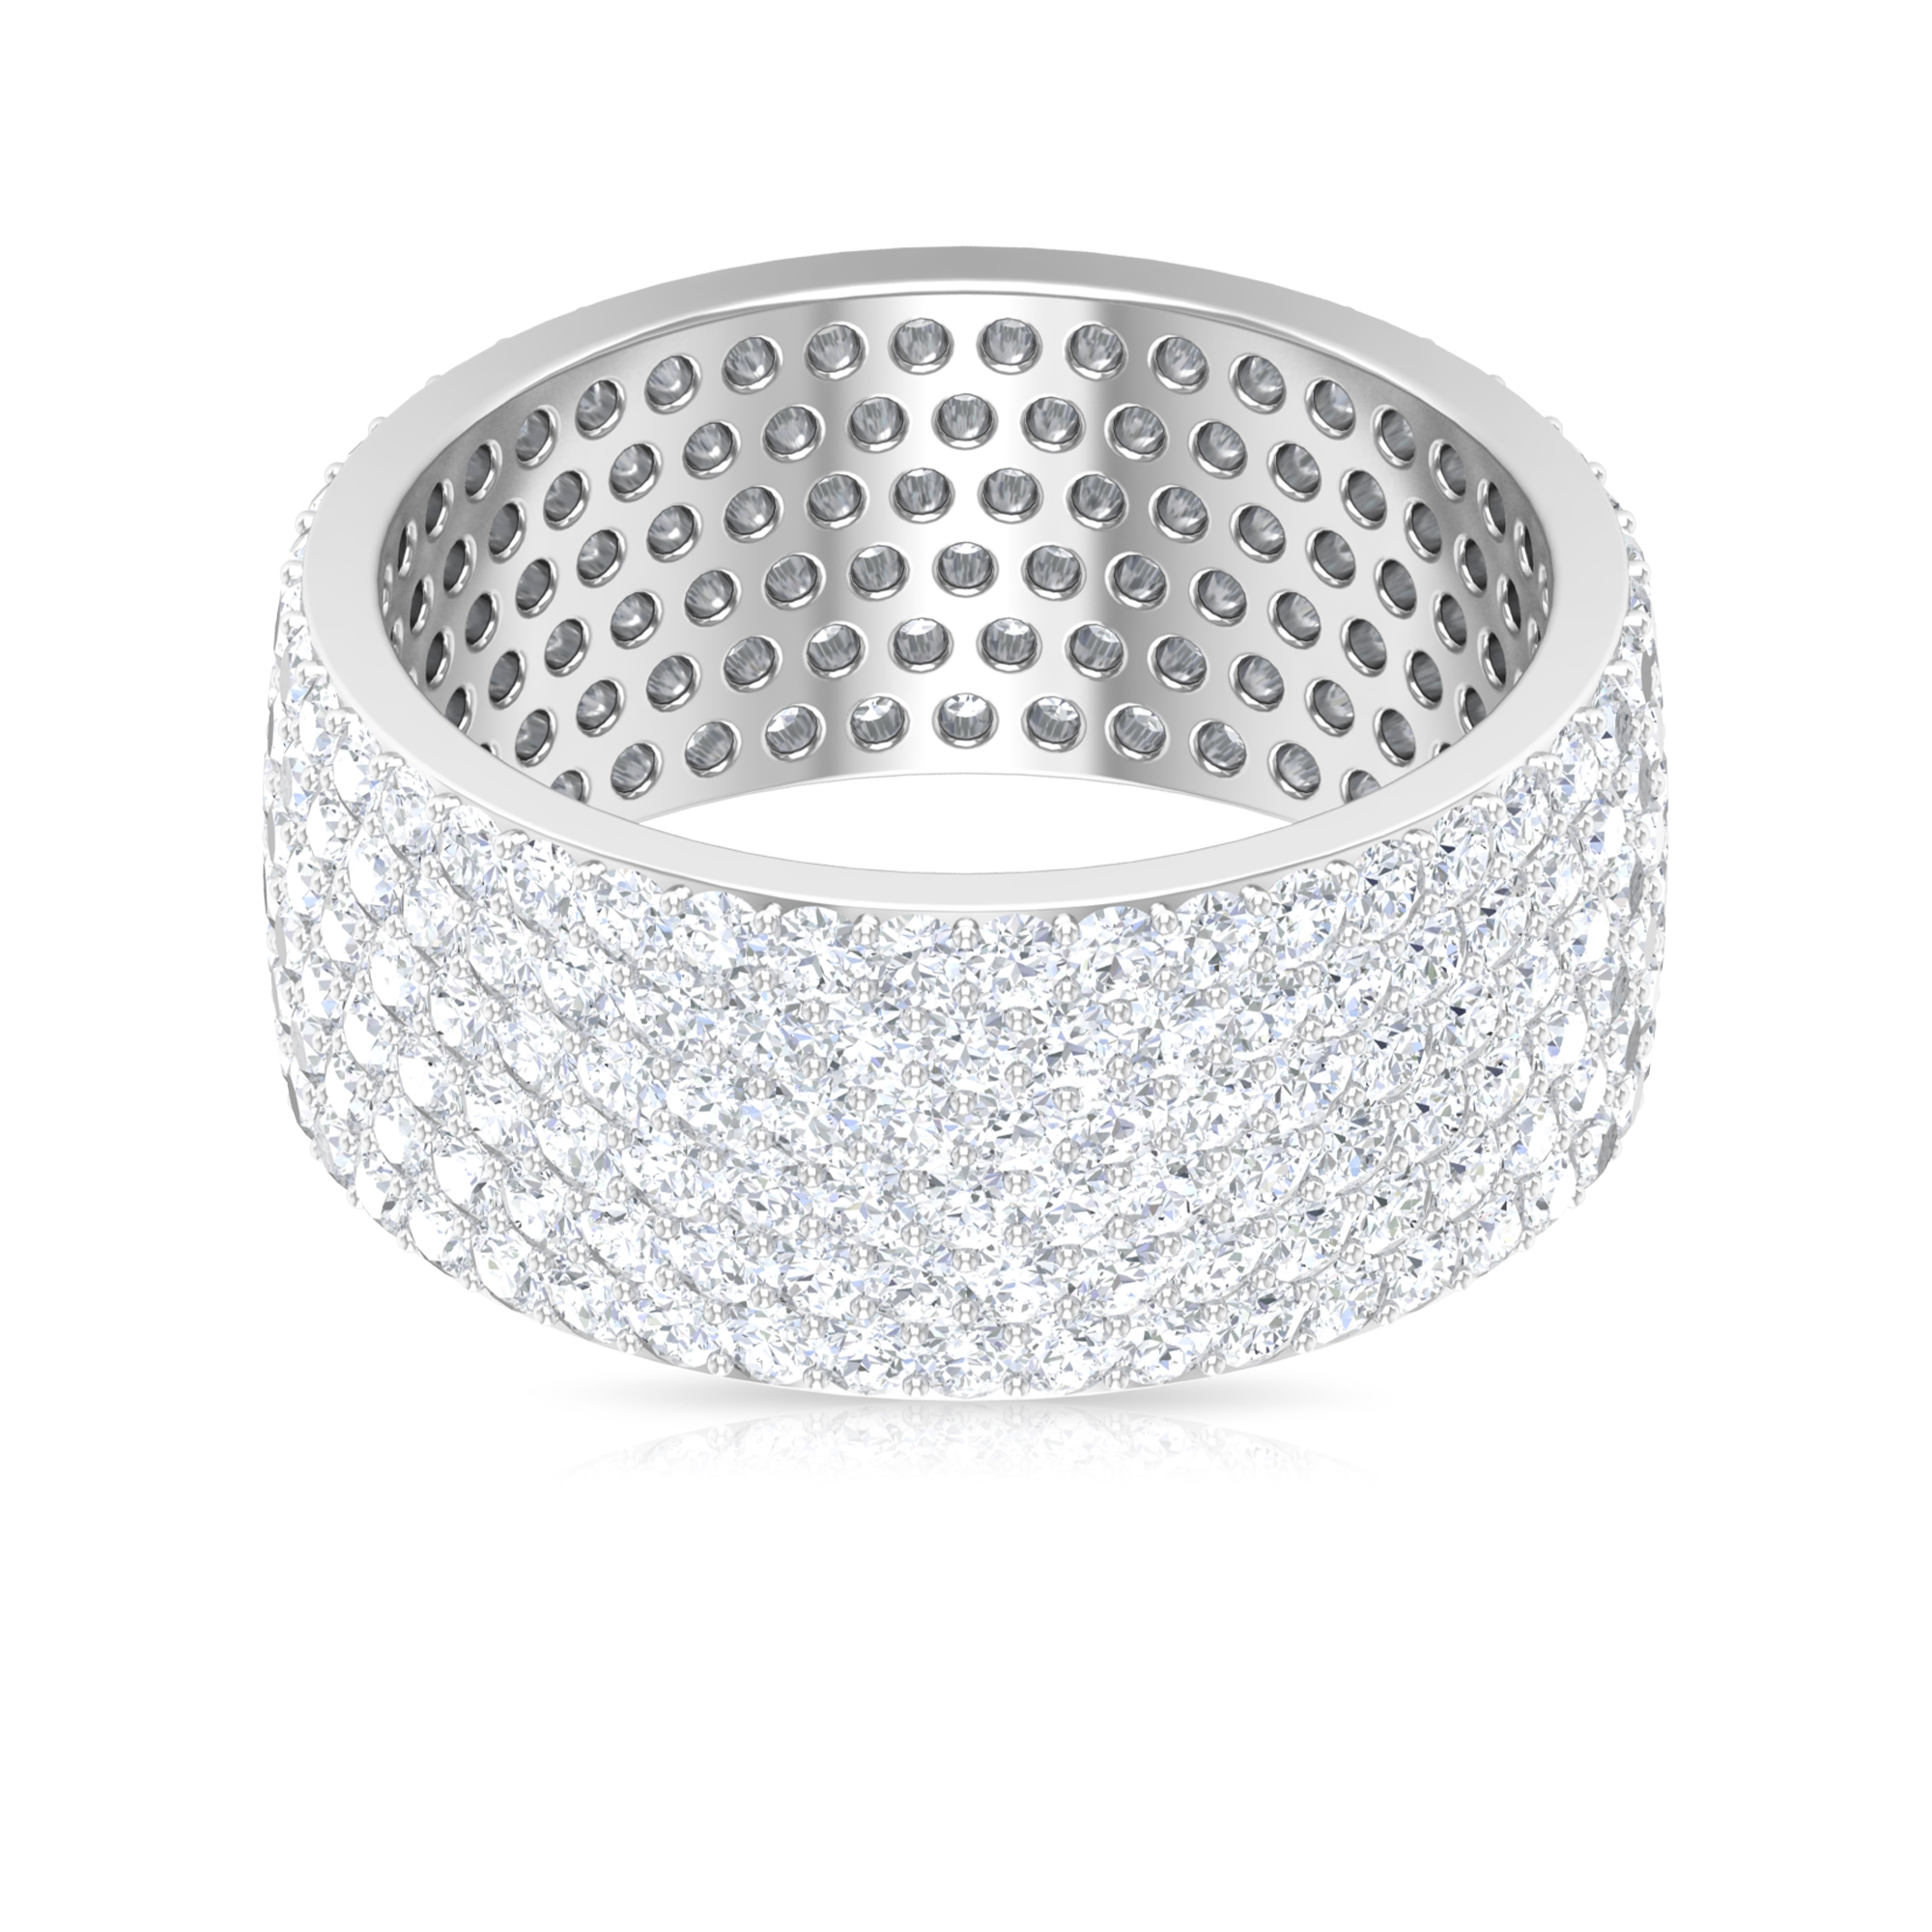 3.75 CT Pave Set Diamond Cluster Band Ring